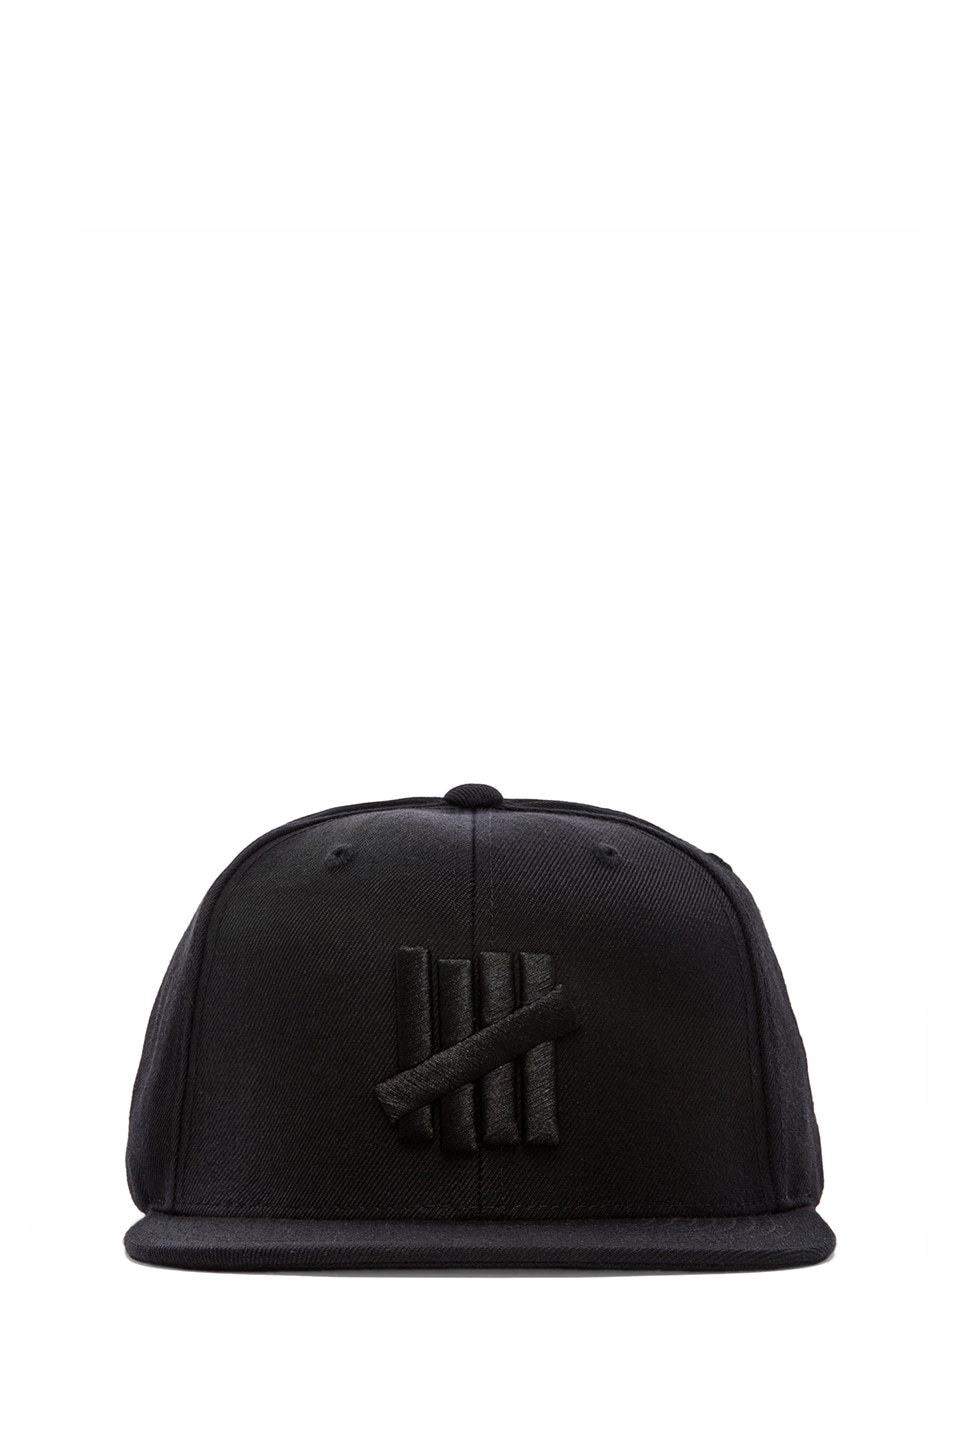 Undefeated 5 Strike Tonal Snapback in Black